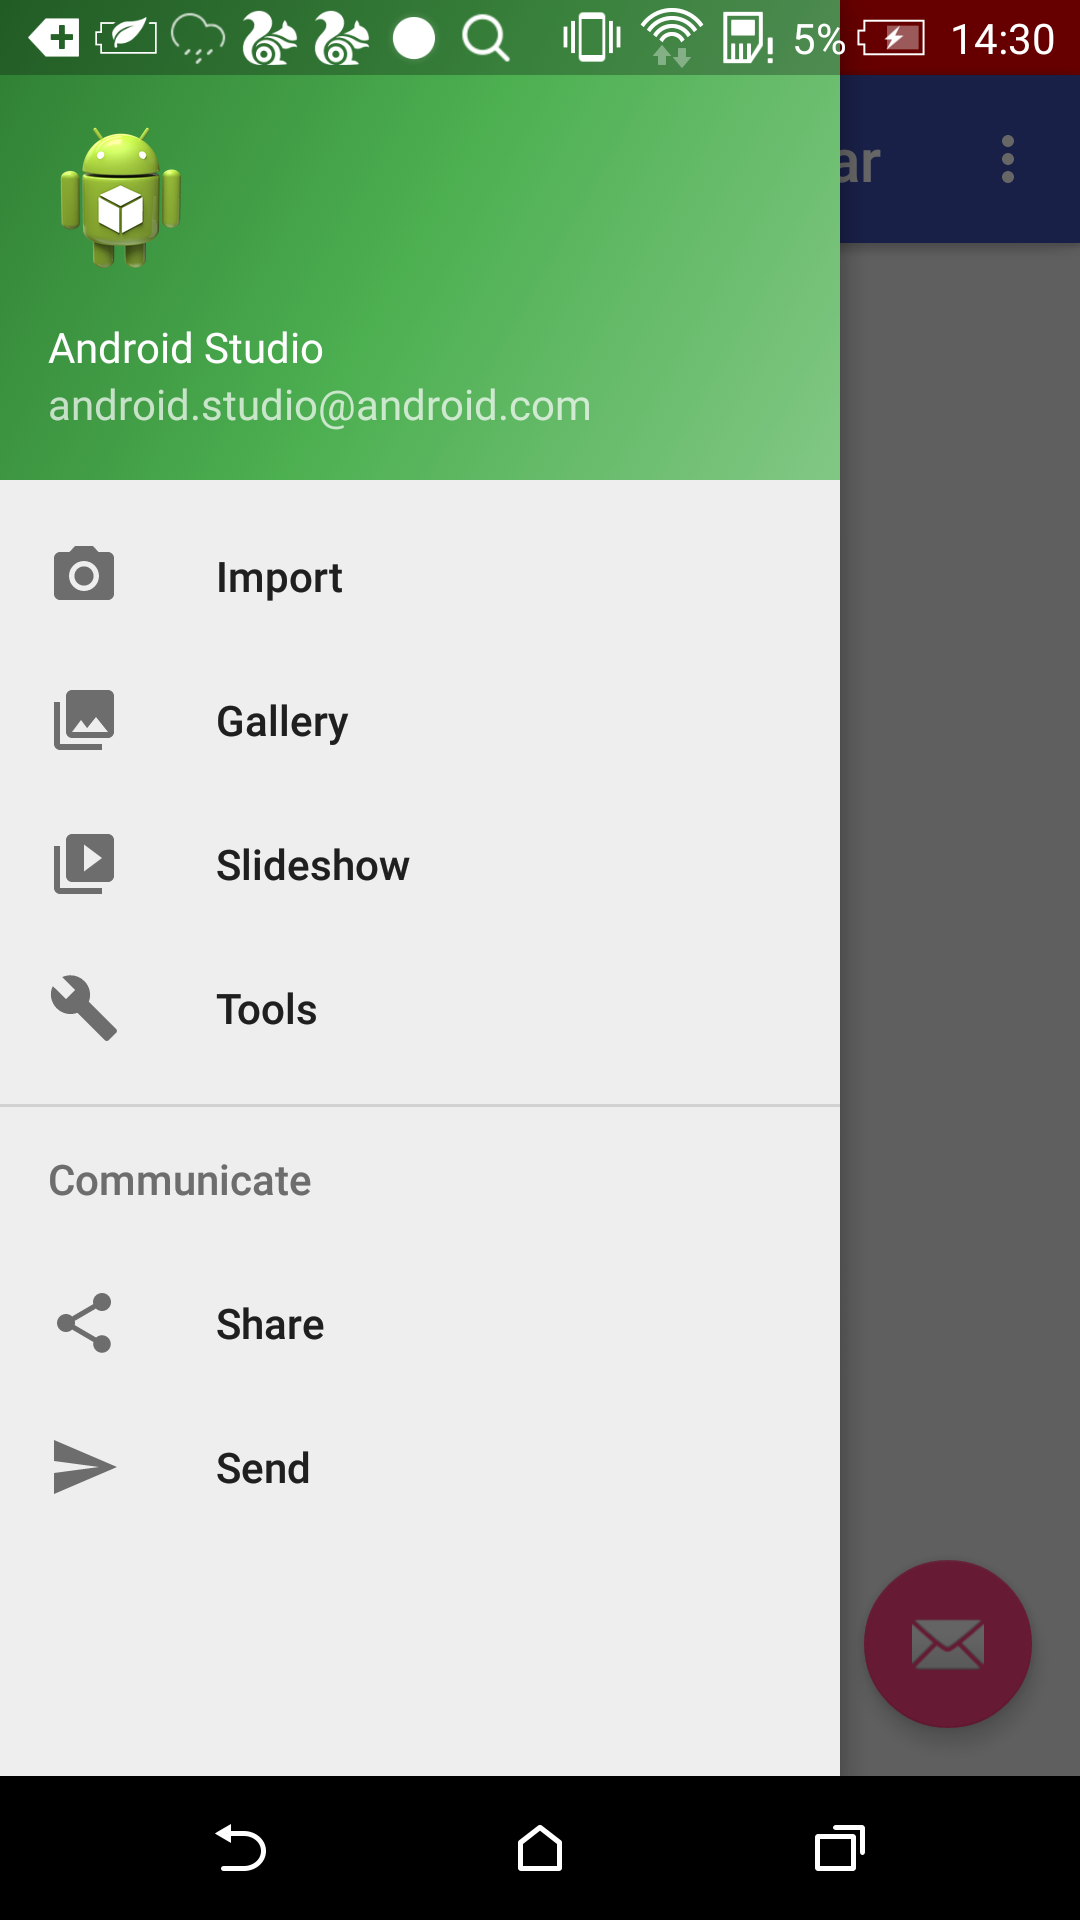 open drawerlayout see statusbar color